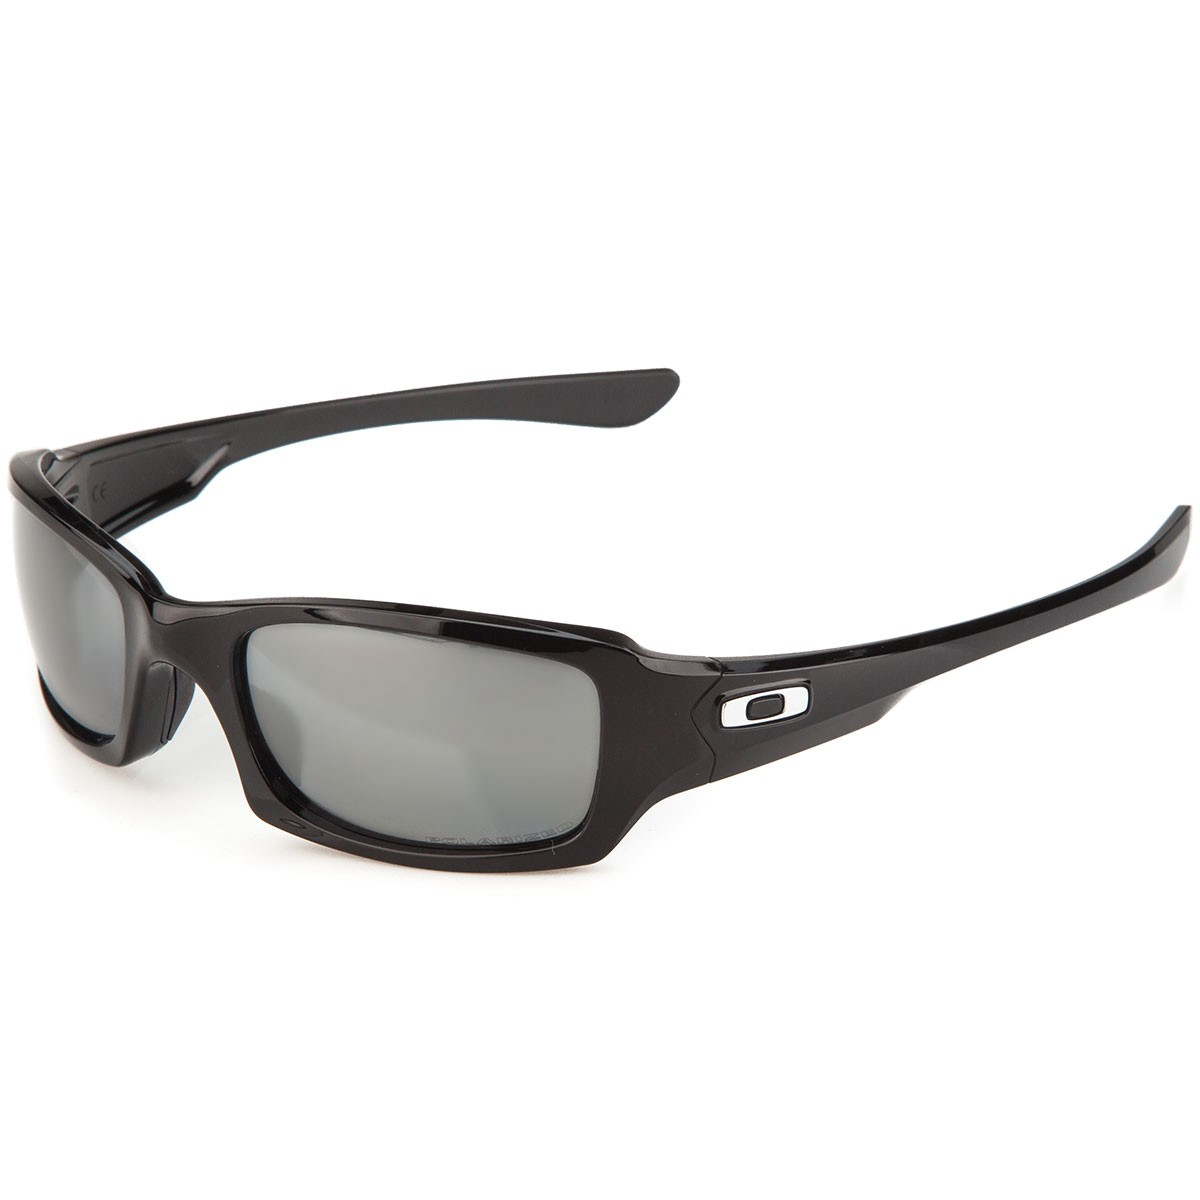 9a2563180b Oakley Fives Sunglasses Polished Black « Heritage Malta